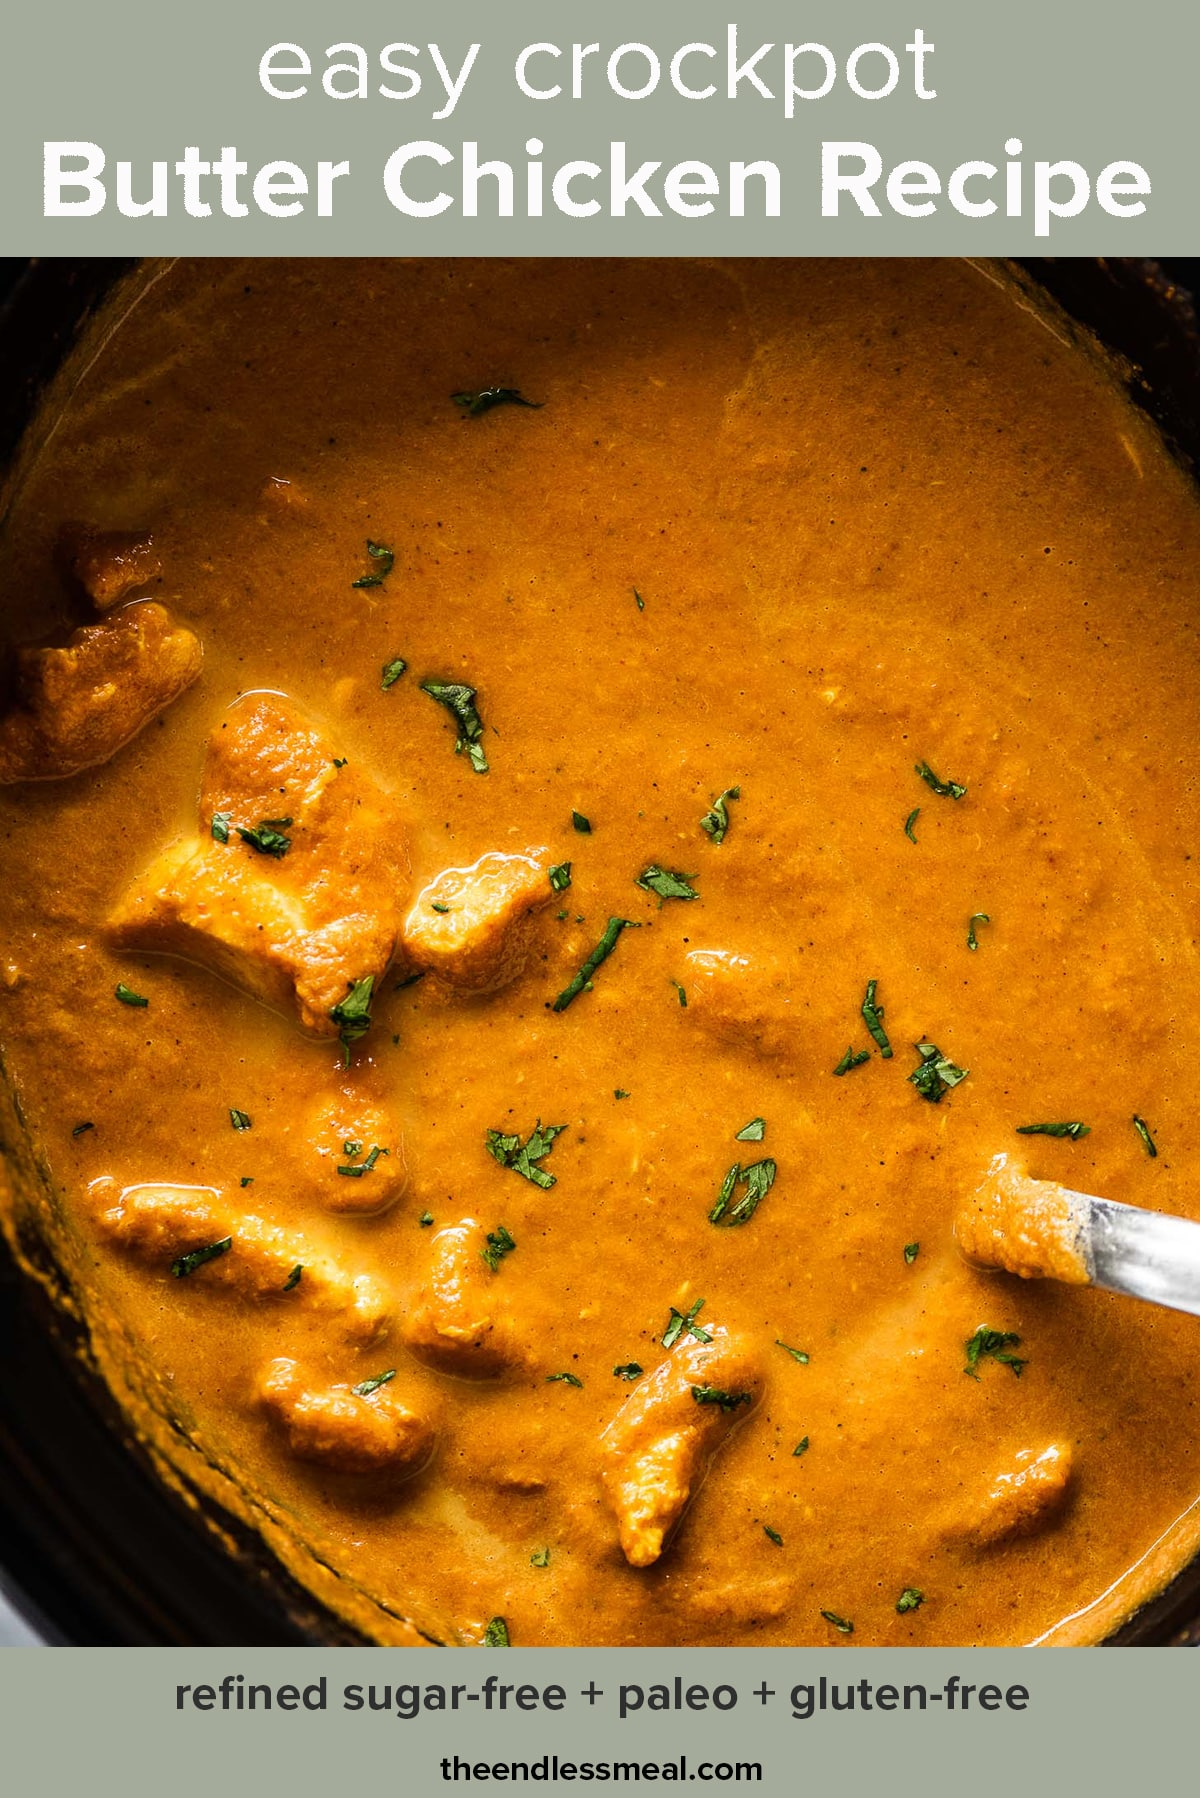 Crockpot Butter Chicken in a slow cooker with the recipe title on top of the picture.